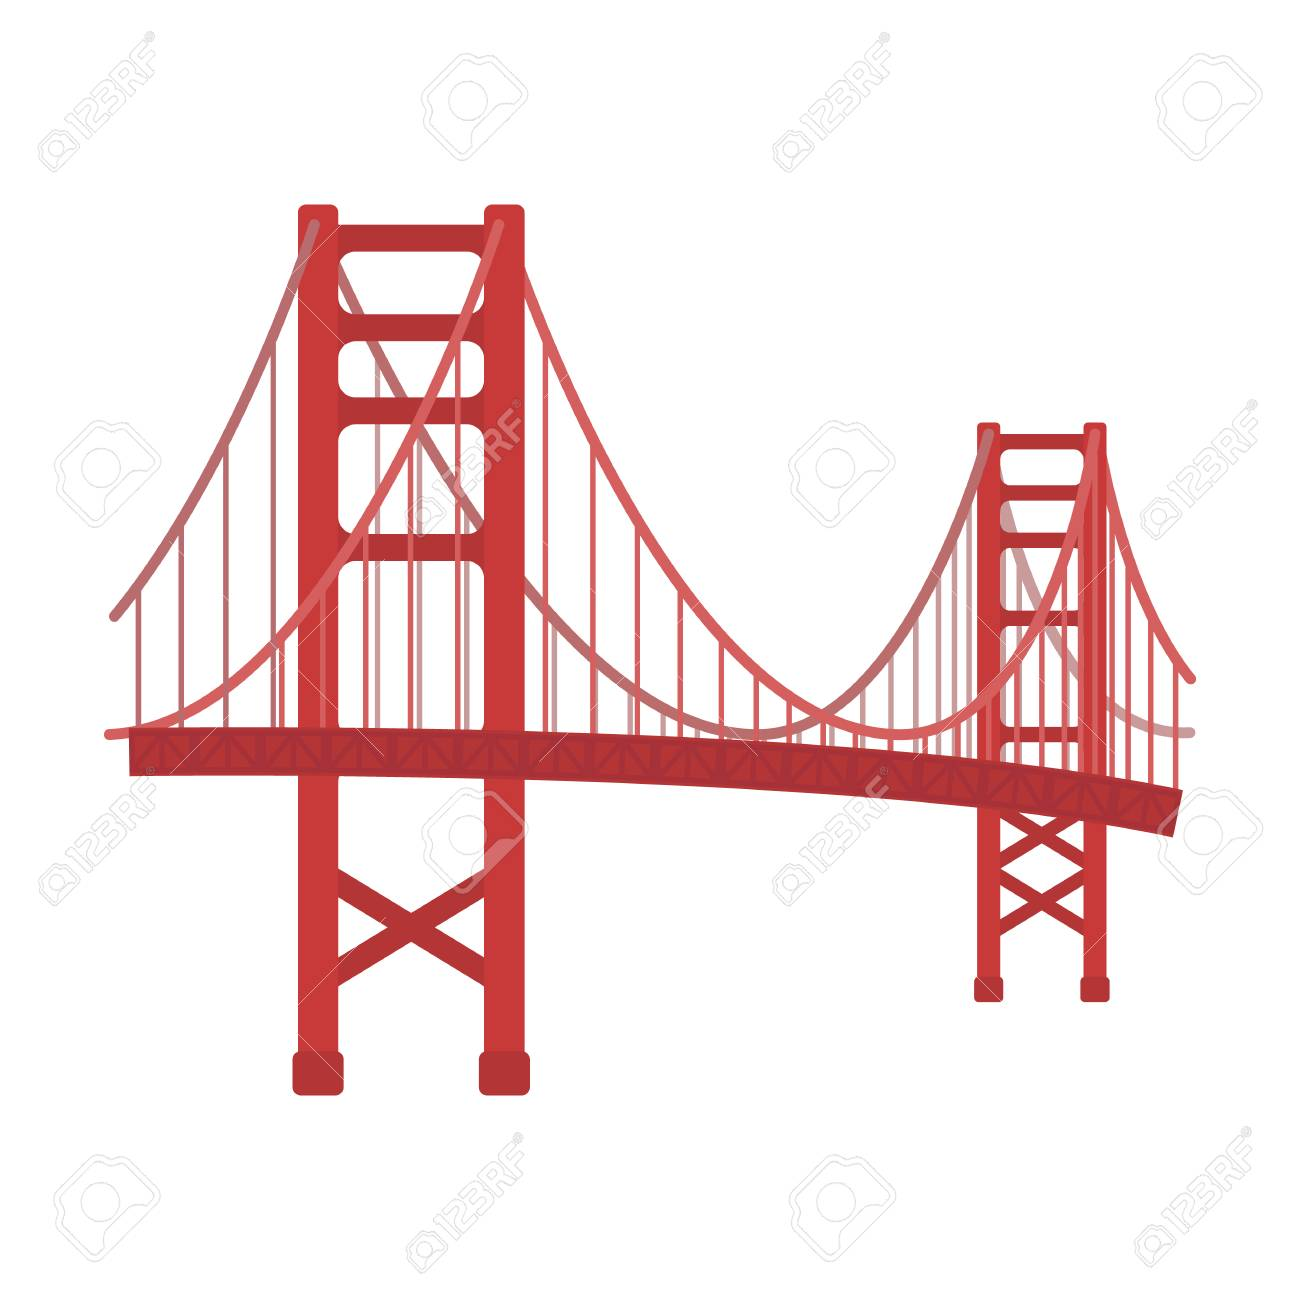 golden gate bridge icon in cartoon style isolated on white rh 123rf com Golden Gate Bridge SVG Golden Gate Bridge Illustration